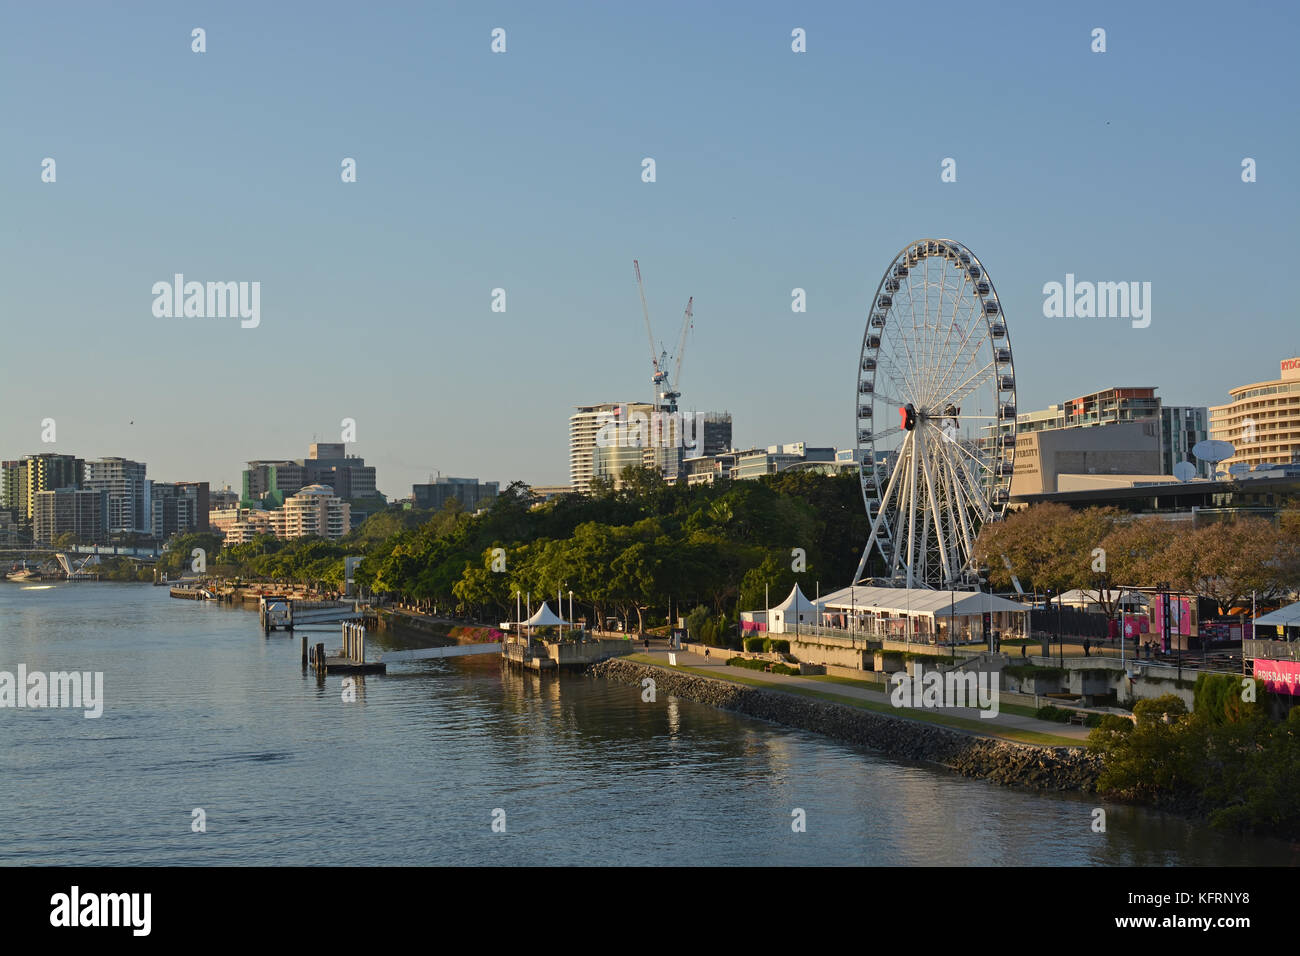 Brisbane, Australia - September 18, 2017: Sunrise Panorama of the Brisbane River & South Bank Big Wheel, Queensland - Stock Image